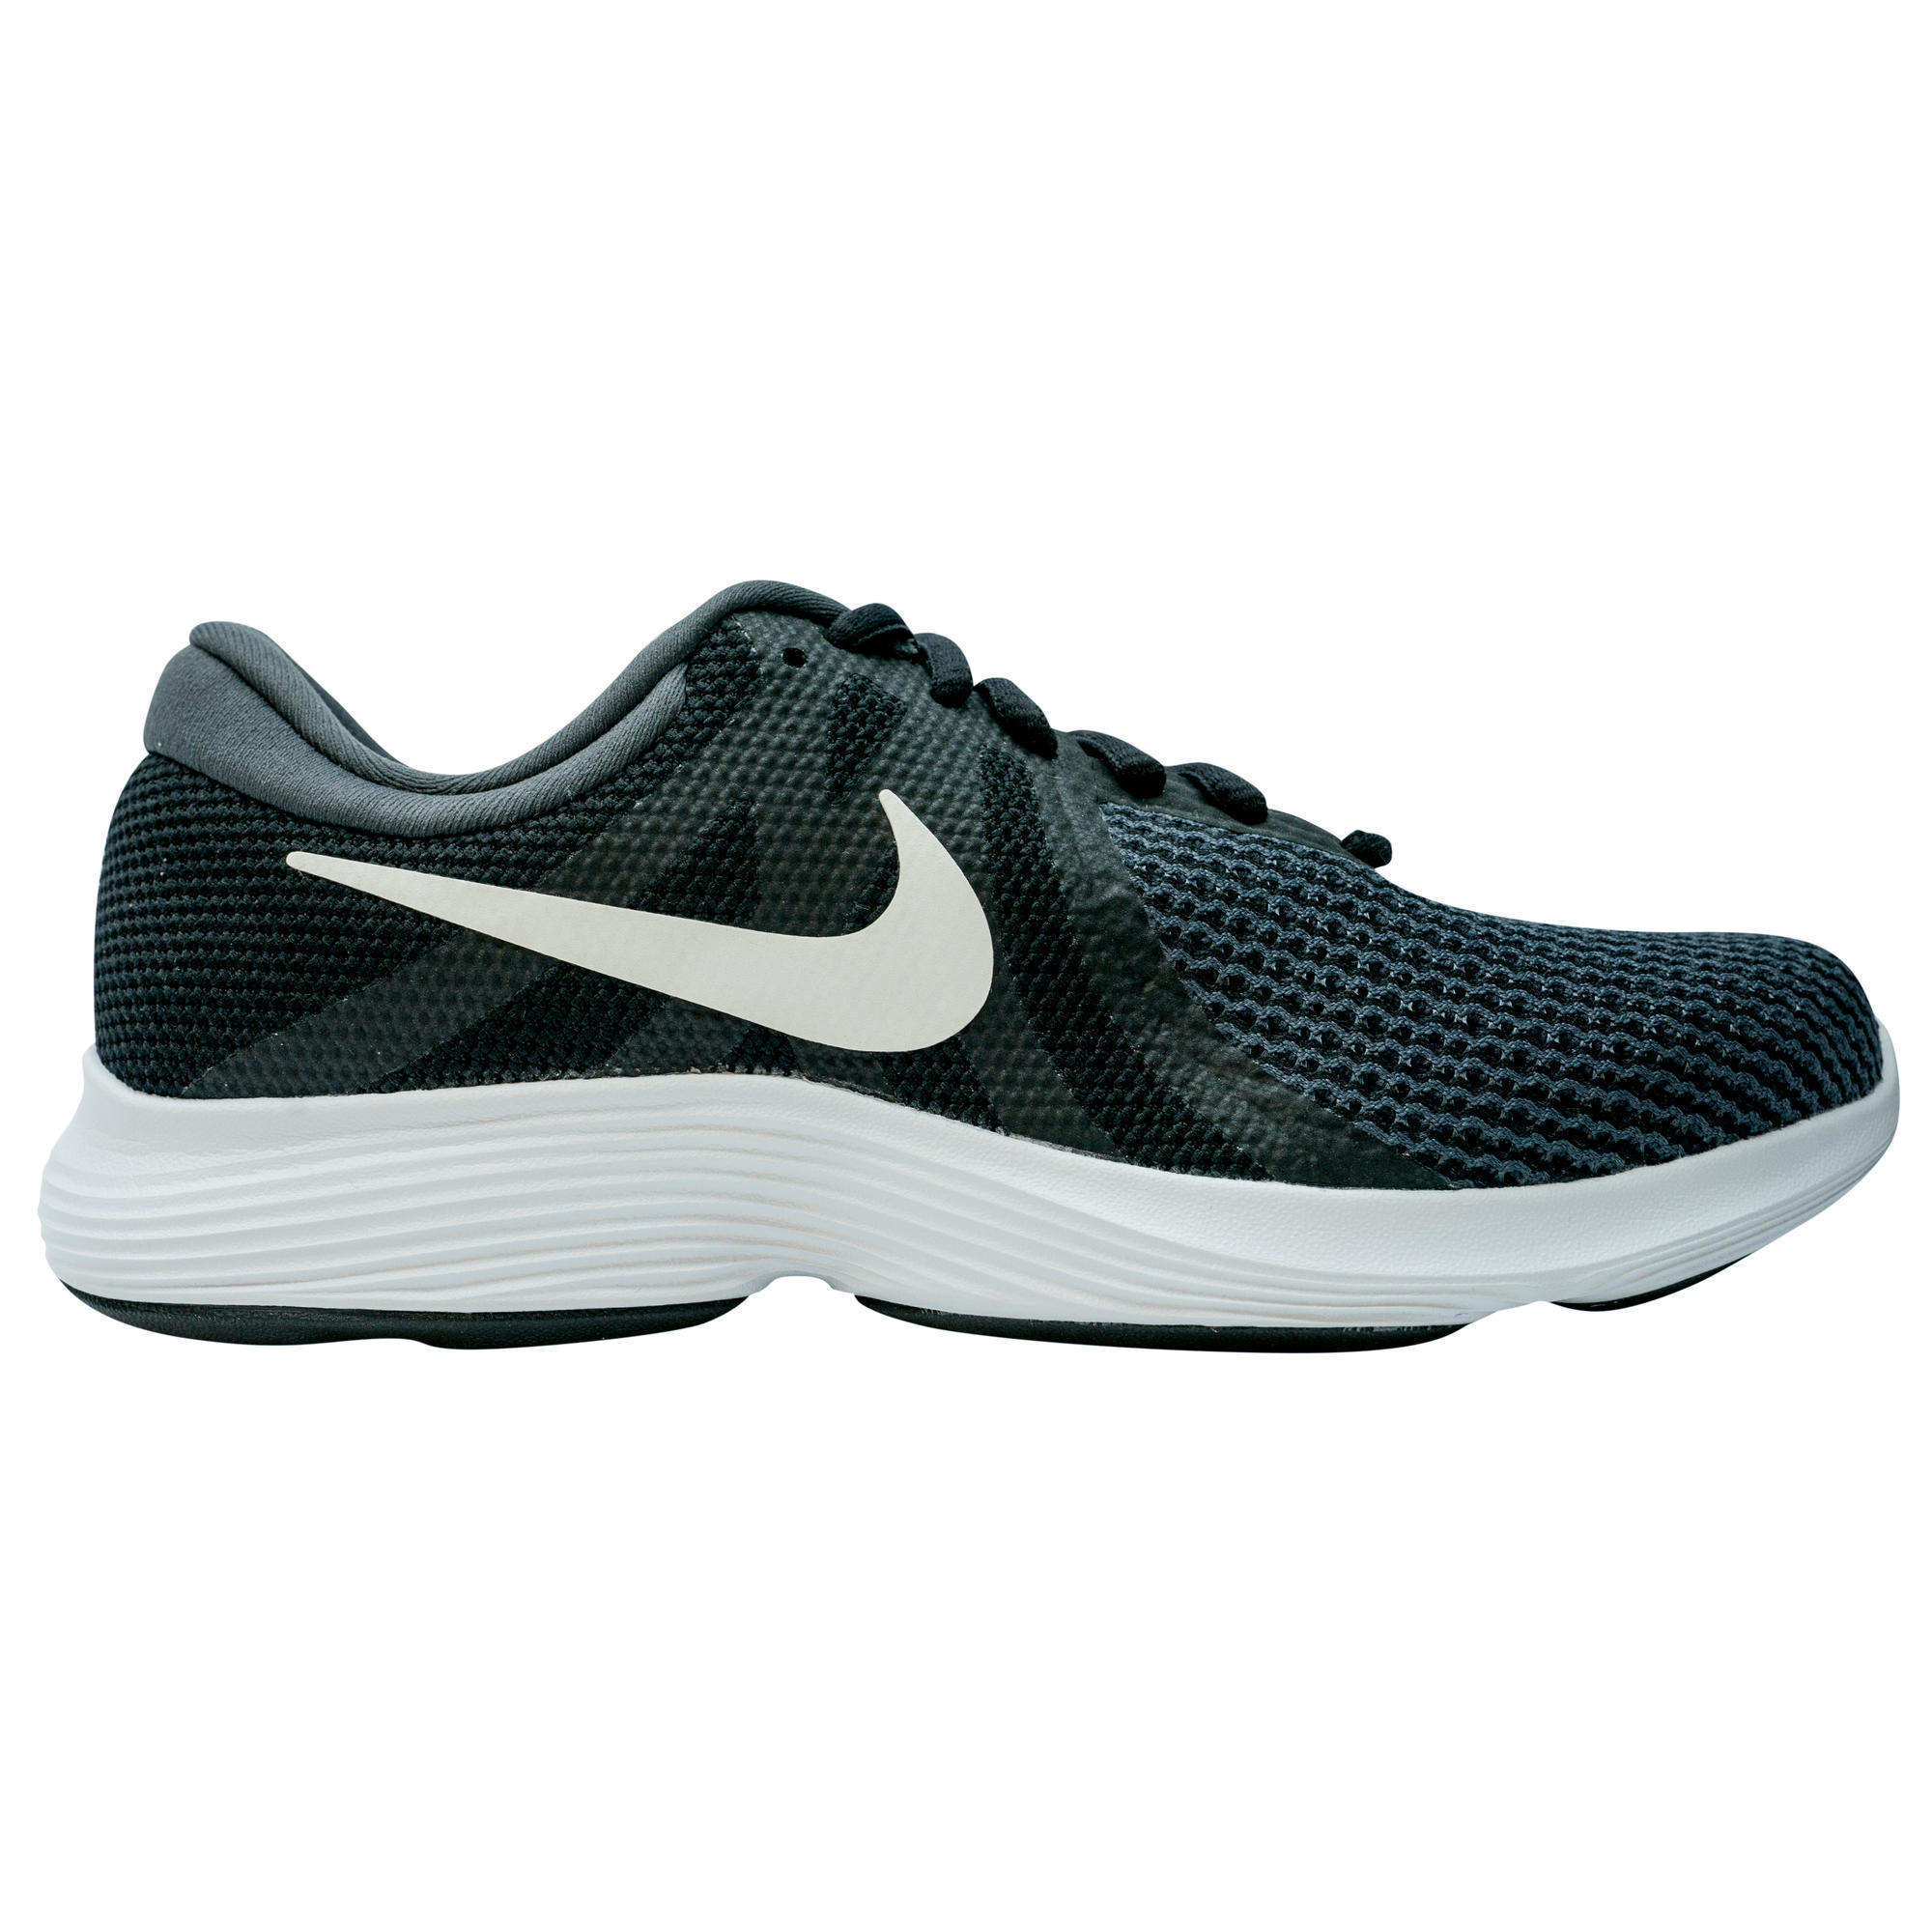 Nike Damessneakers Revolution 4 zwart-wit